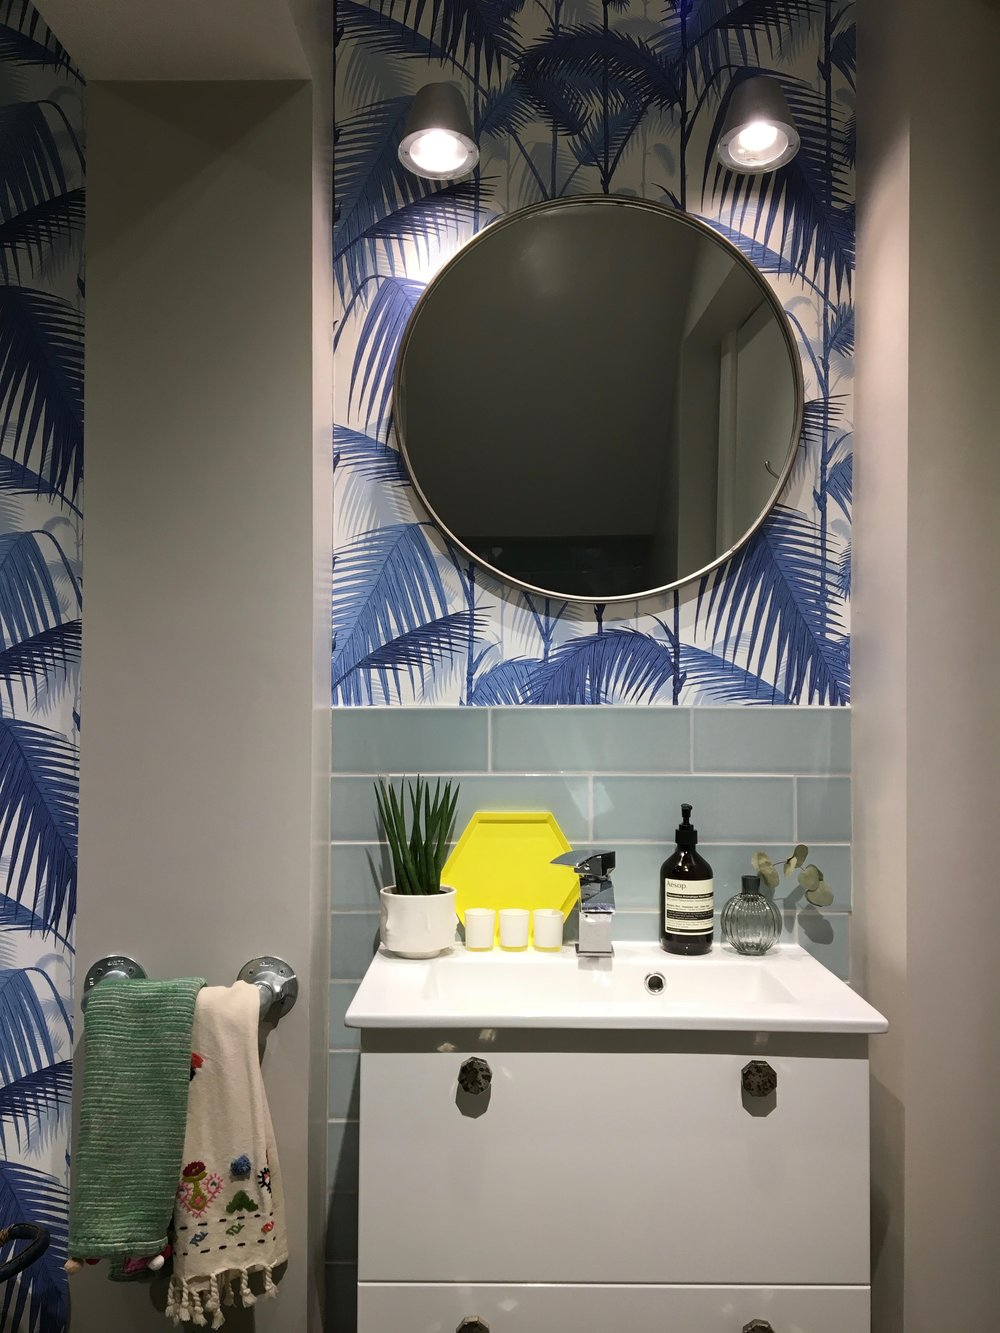 Liznylon_bathroom_with_cole_and_son_wallpaper_blue.jpg